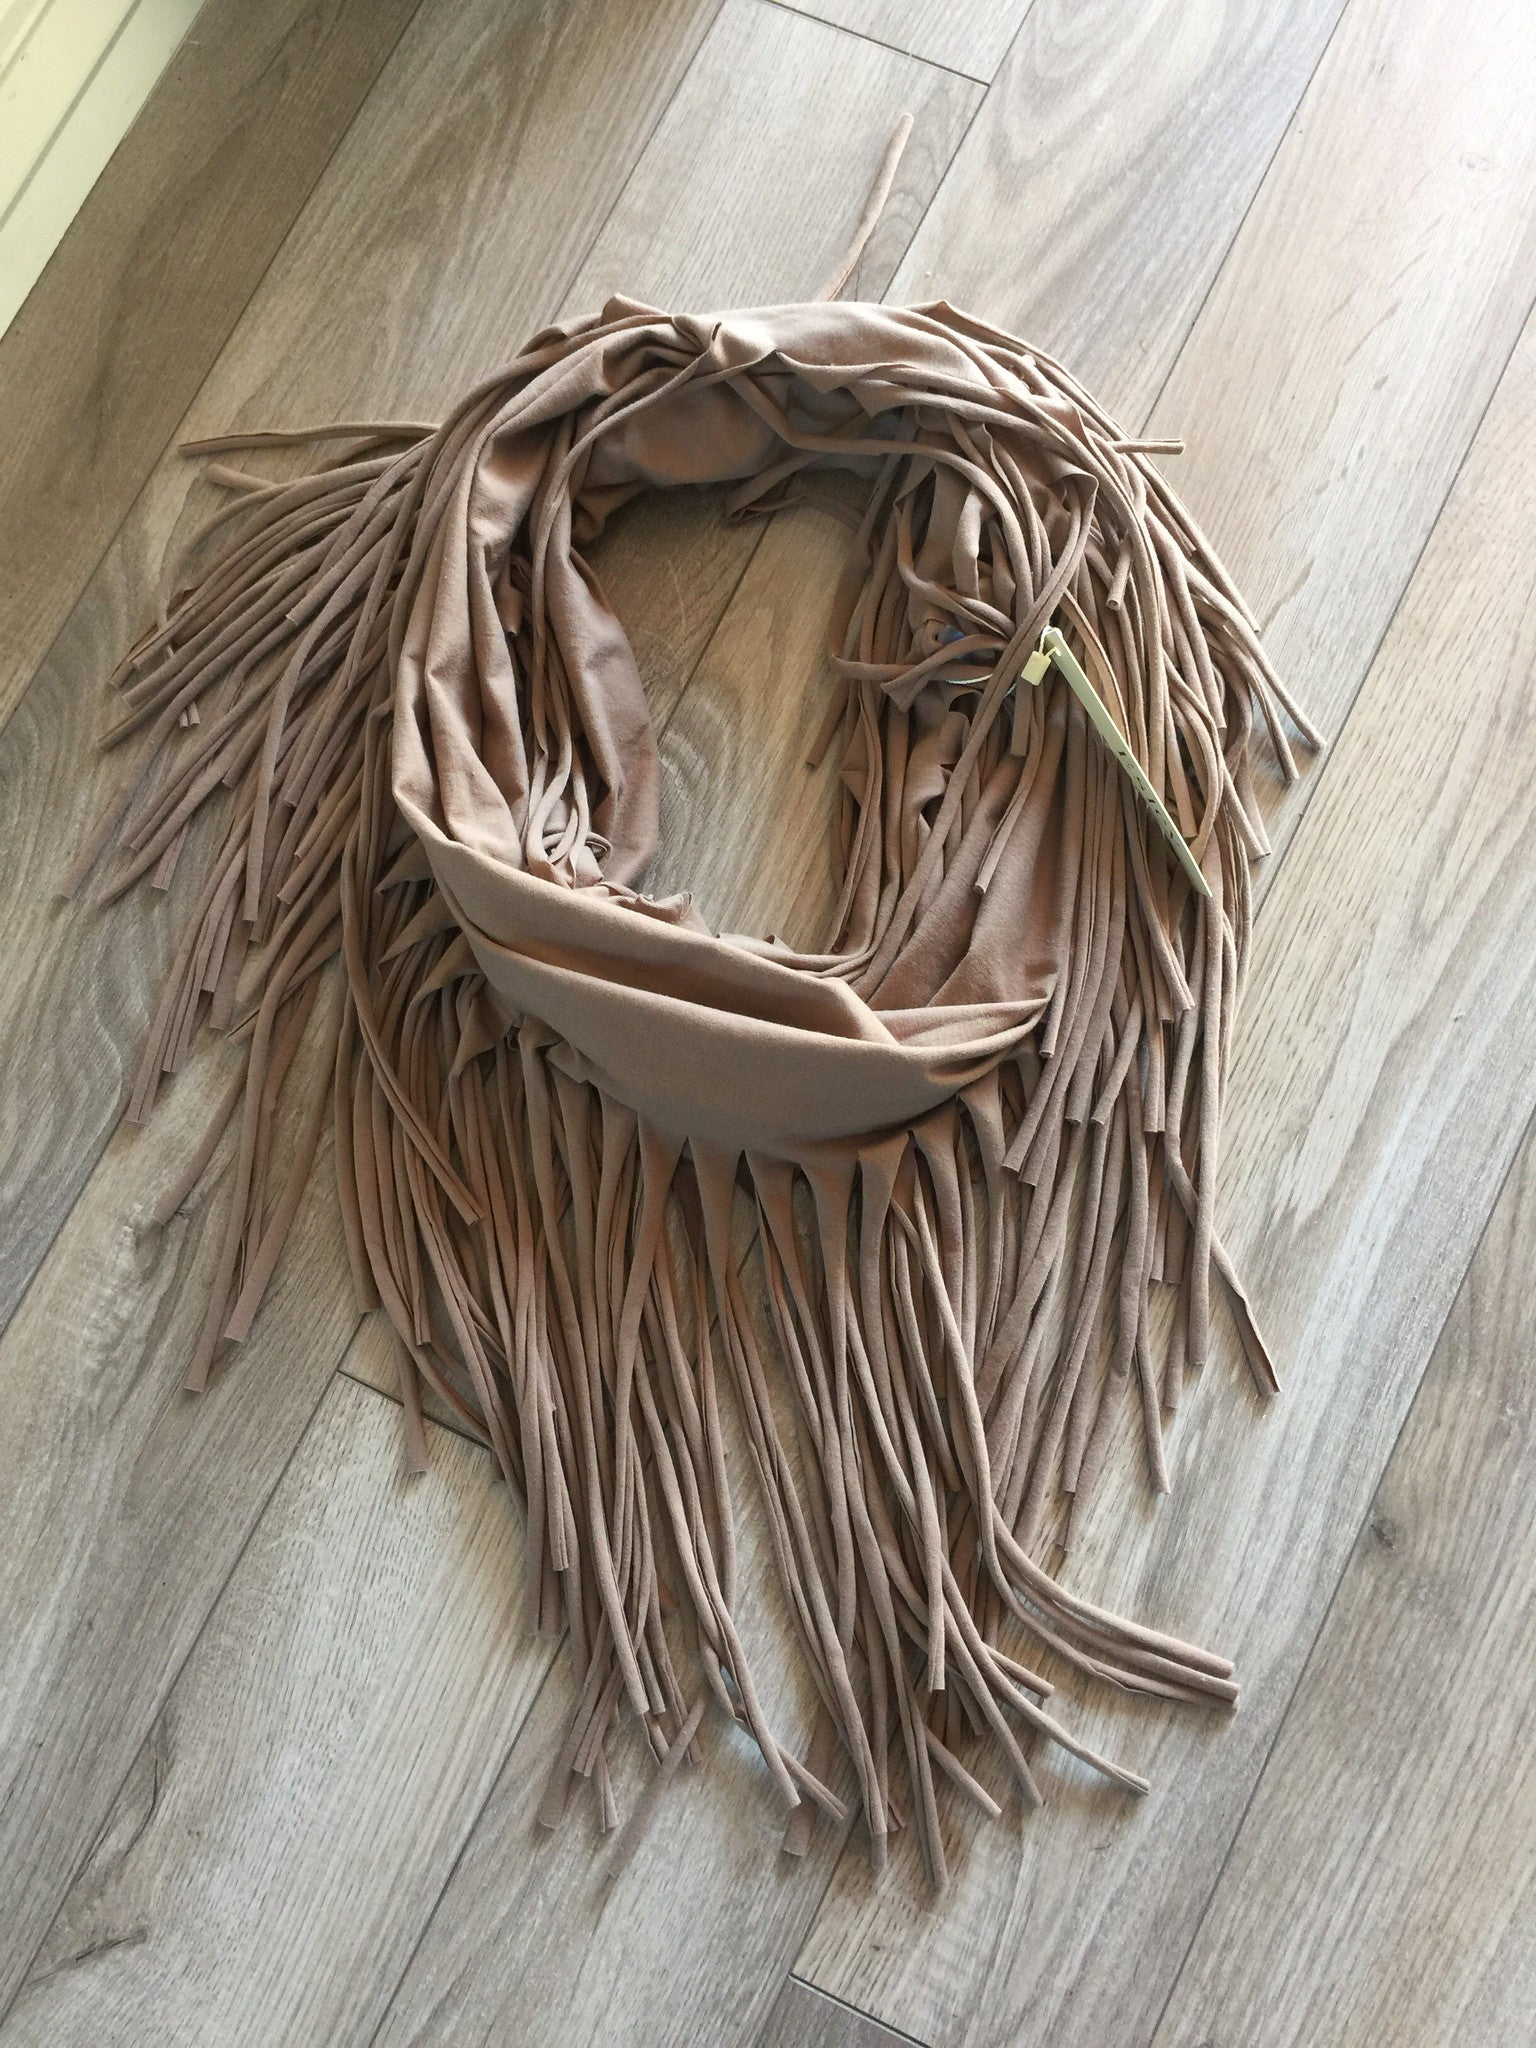 Fringe Benefits Fringe Eternity Scarf